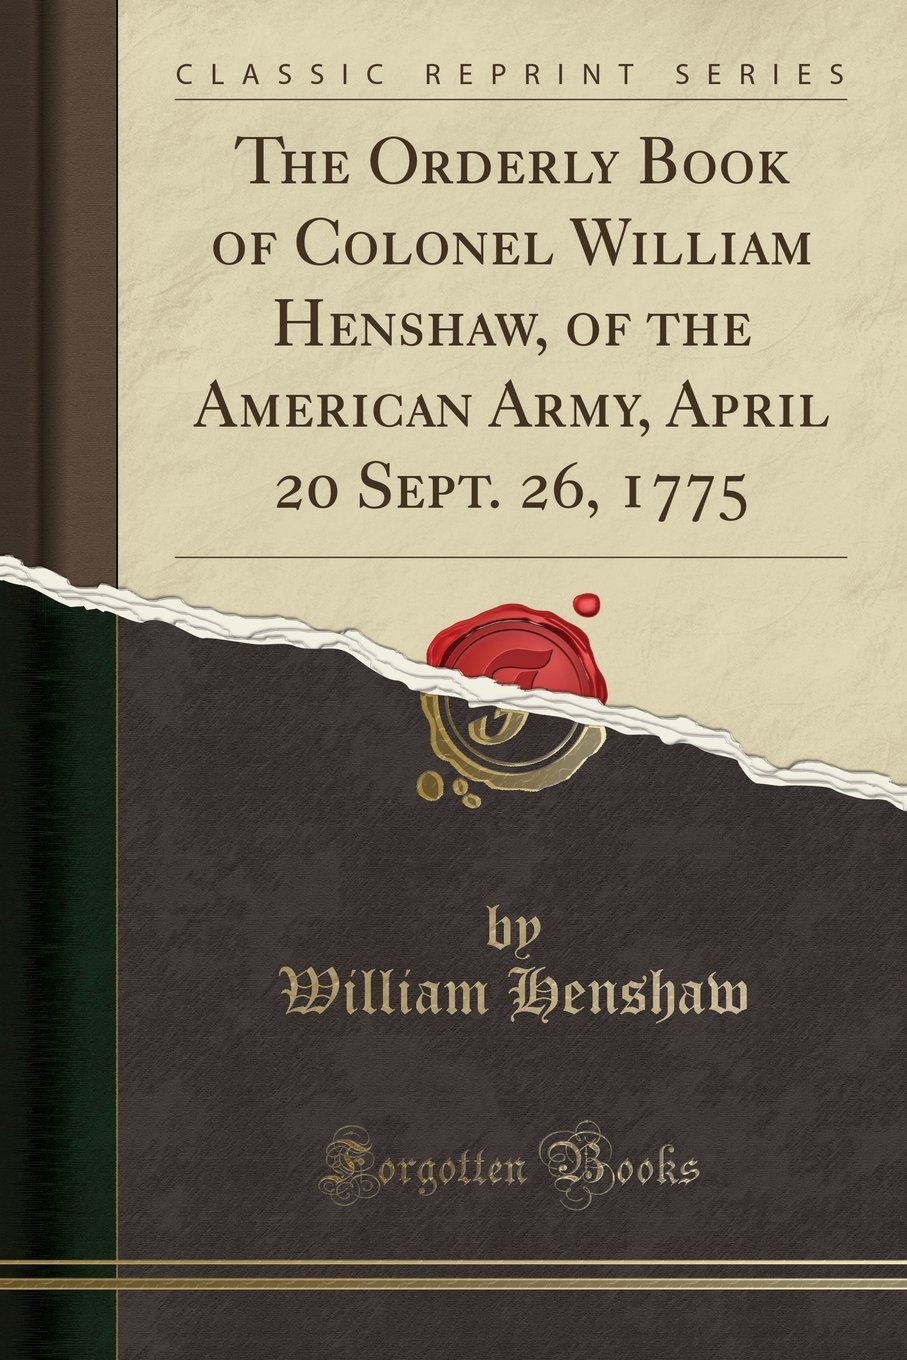 The Orderly Book of Colonel William Henshaw, of the American Army, April 20 Sept. 26, 1775 (Classic Reprint) PDF